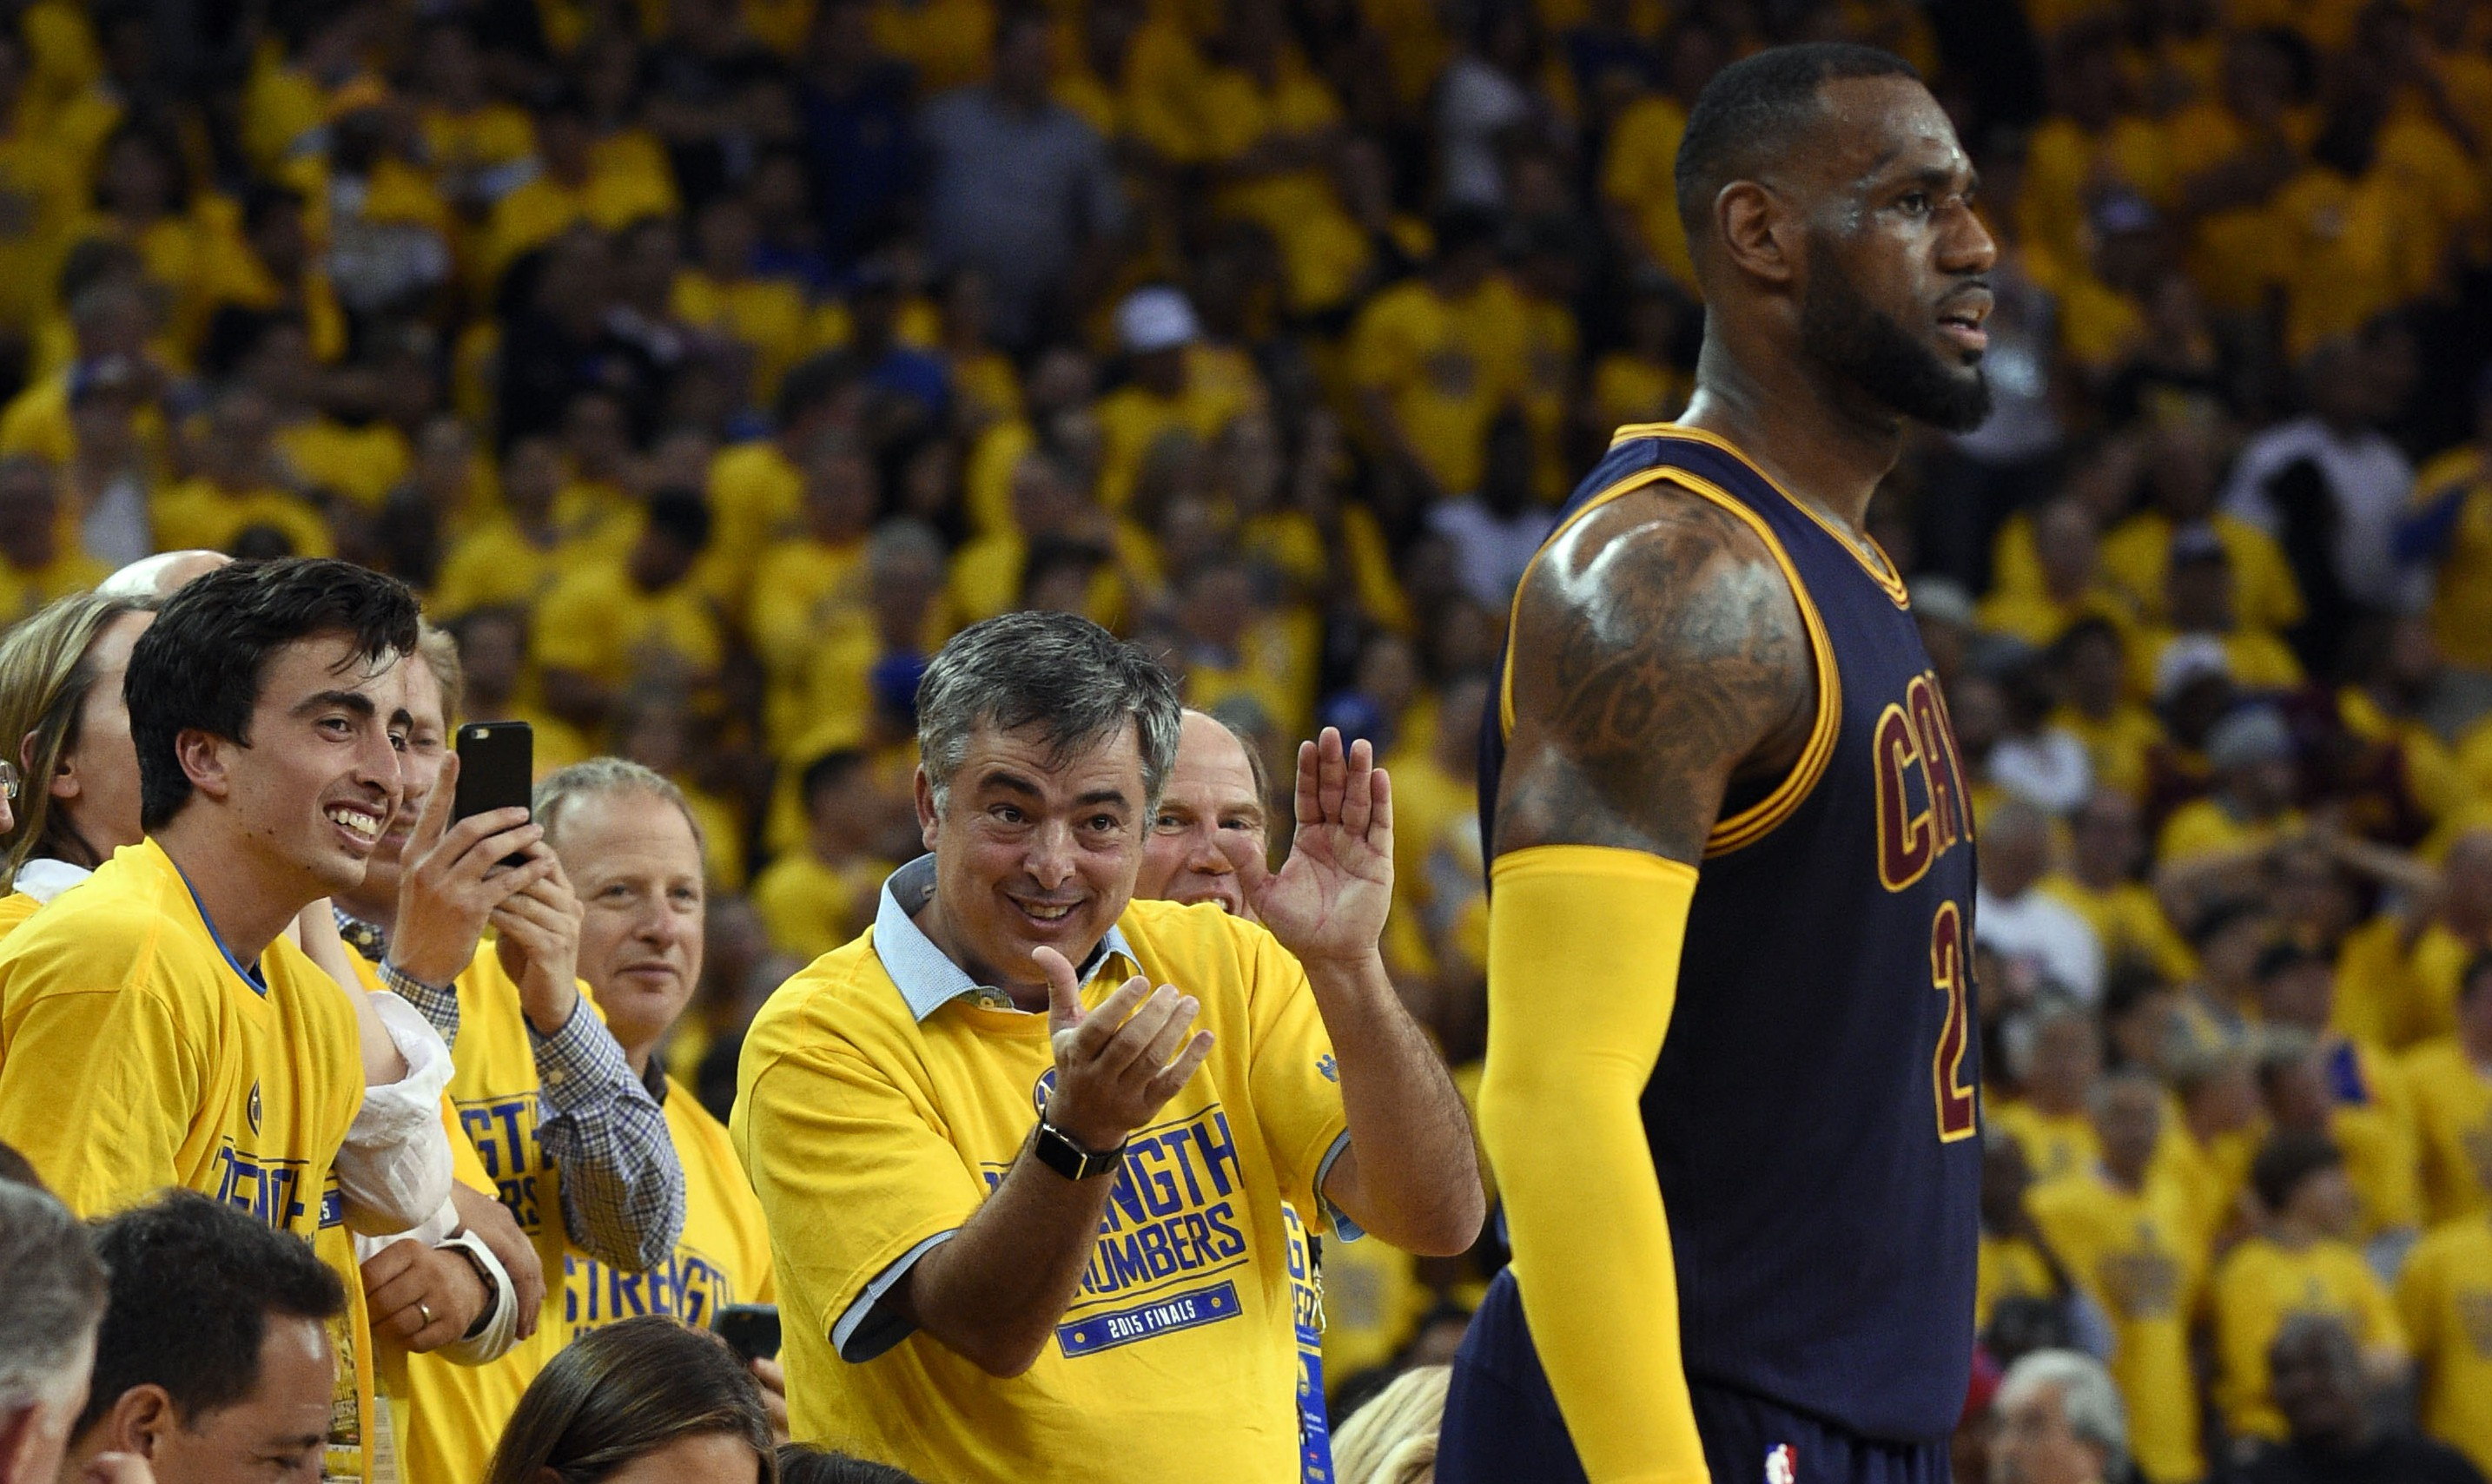 Eddy Cue LeBron James